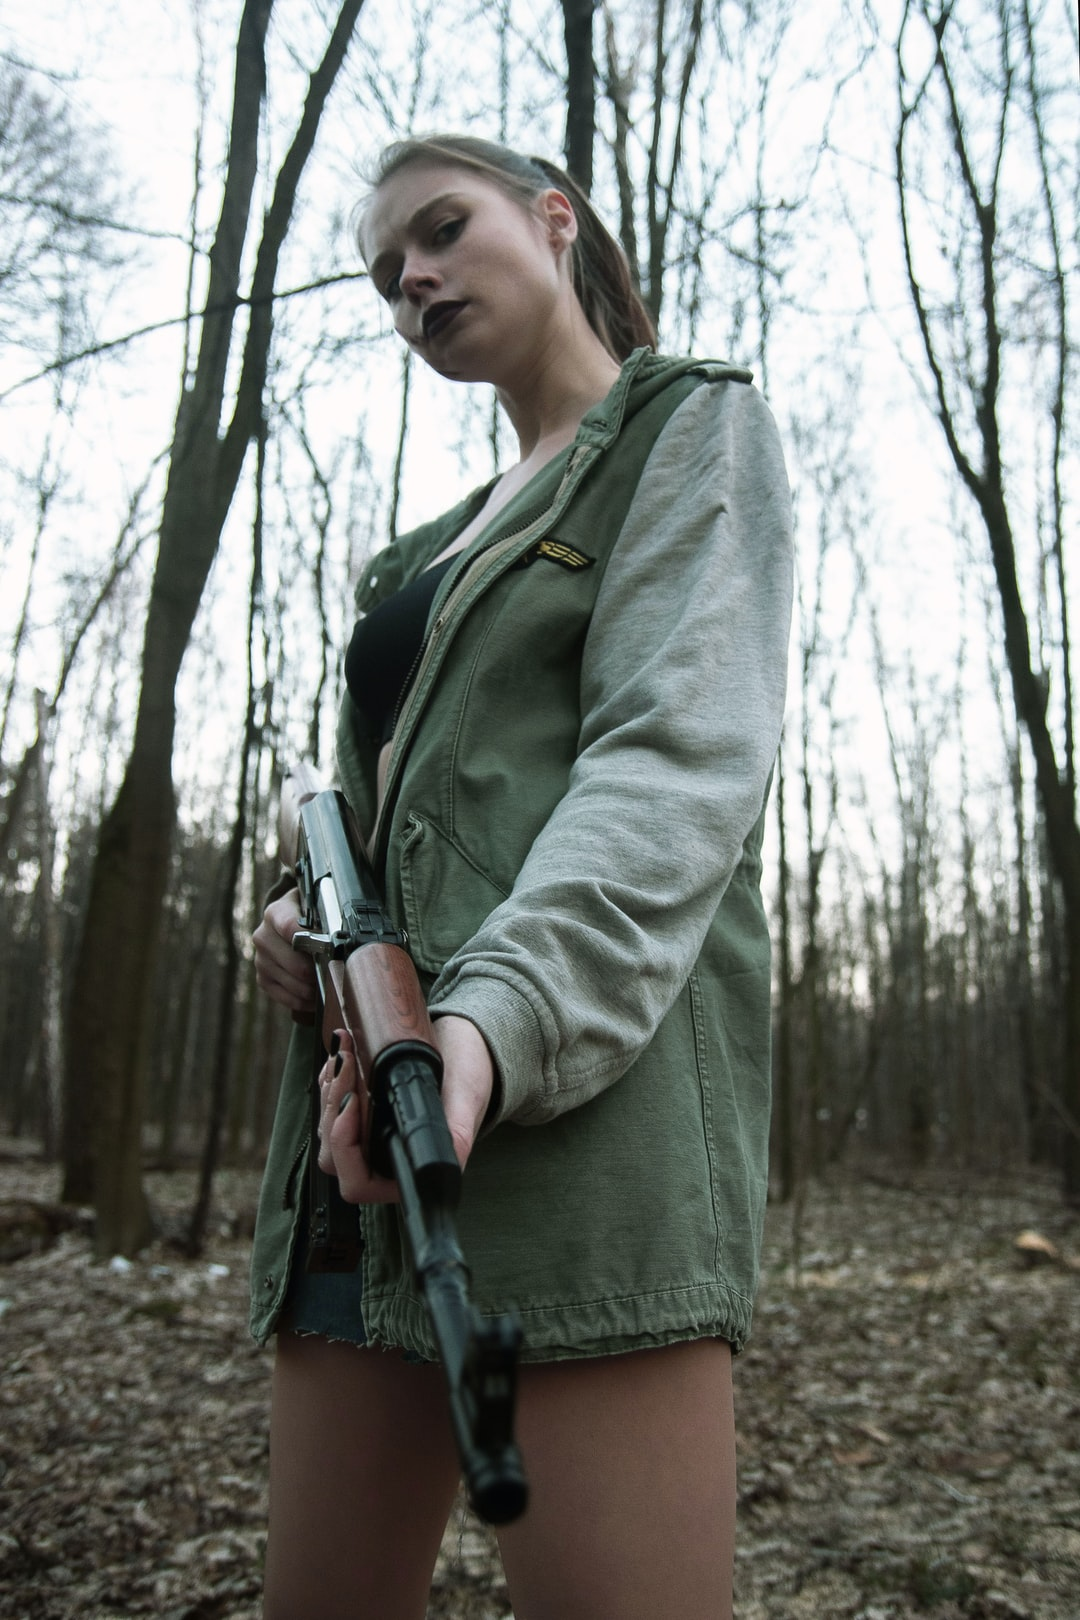 Army girl with ak-47